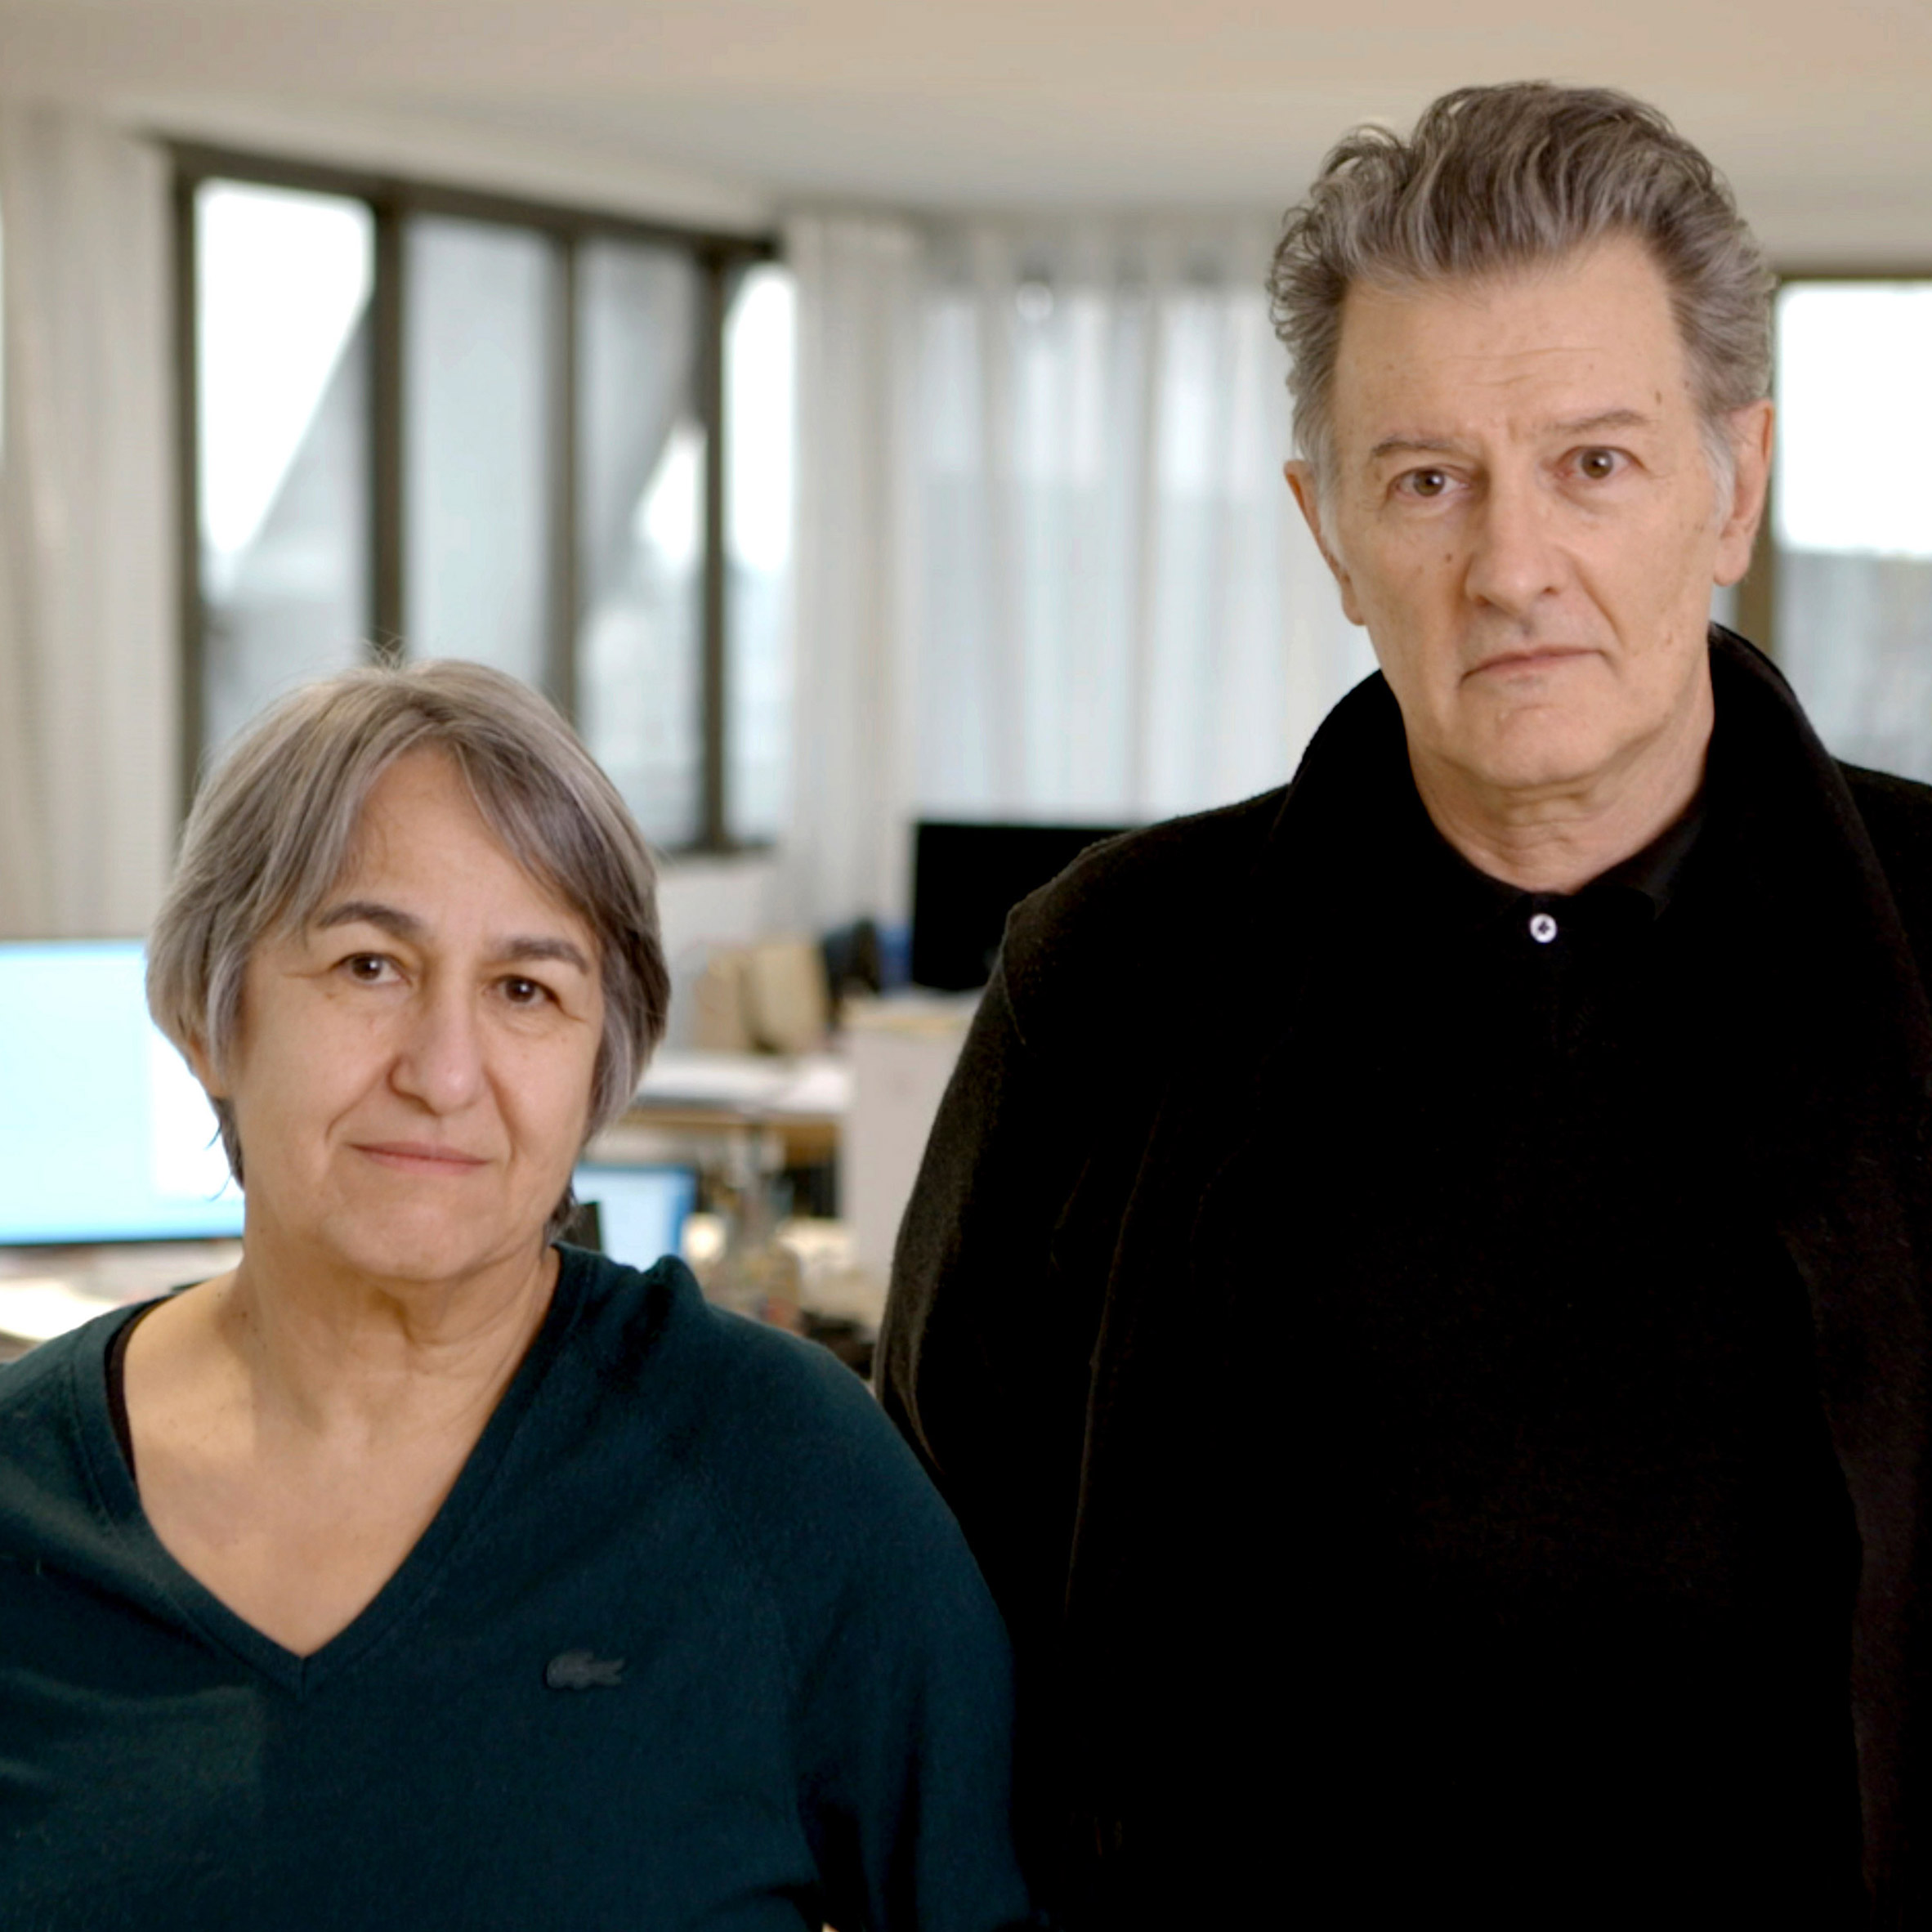 Anne Lacaton and Jean-Philippe Vassal. Photo by Laurent Chalet